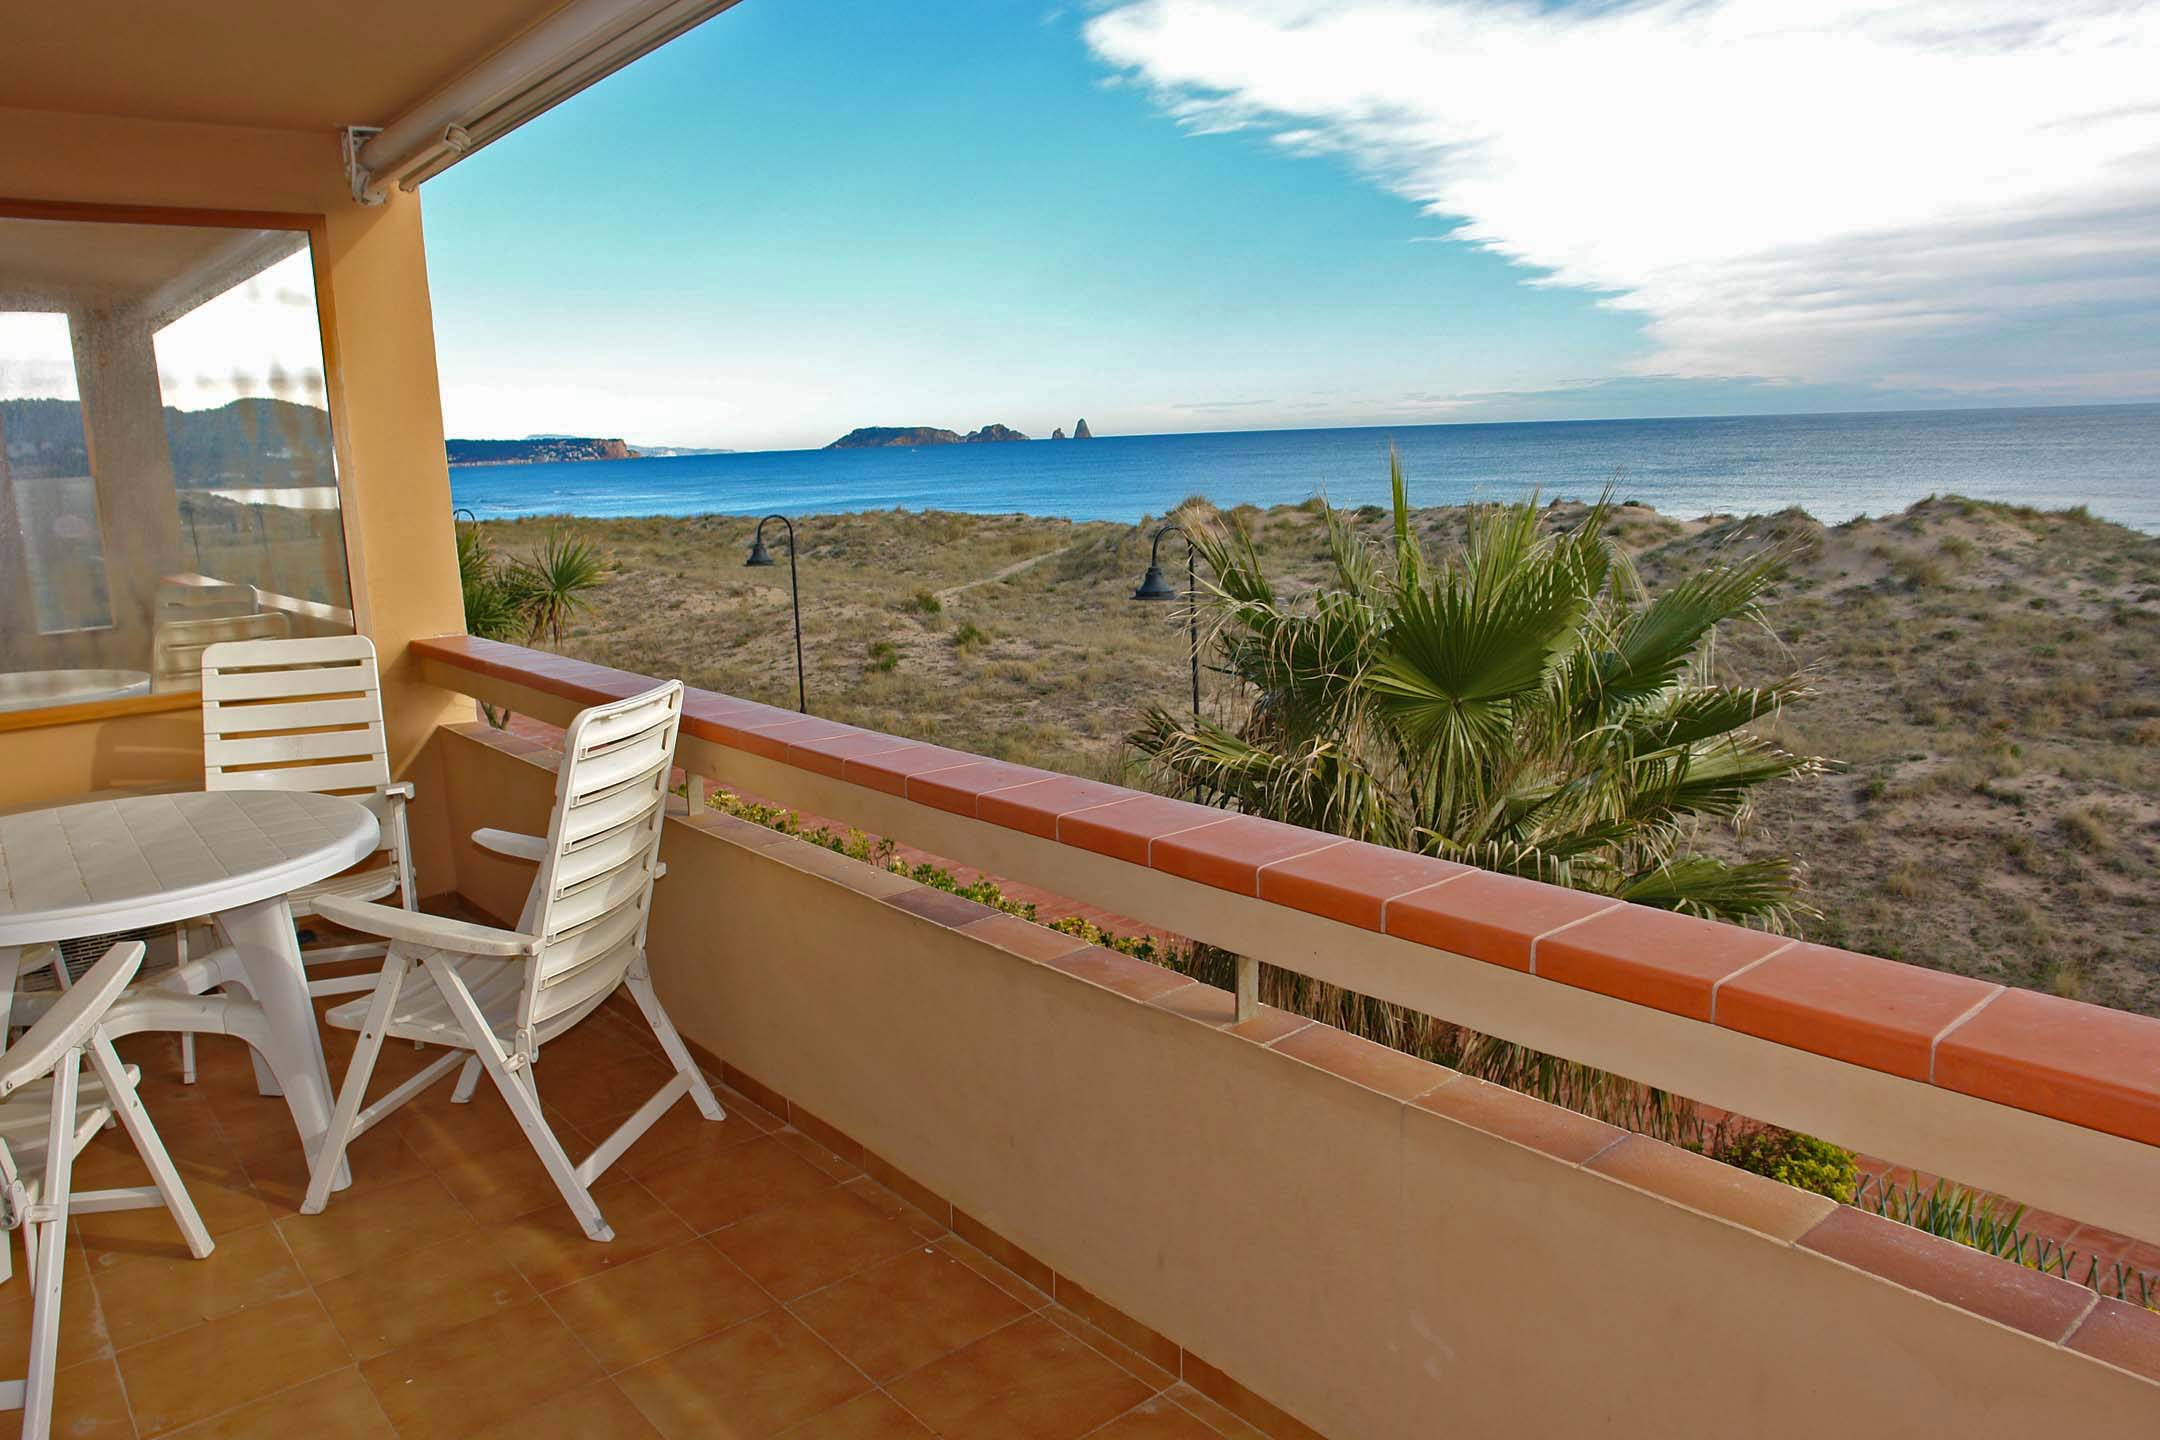 Appartamento per Vendita alle ore Seafront apartment with fantastic views in Playa de Pals Pals, Costa Brava 17256 Spagna